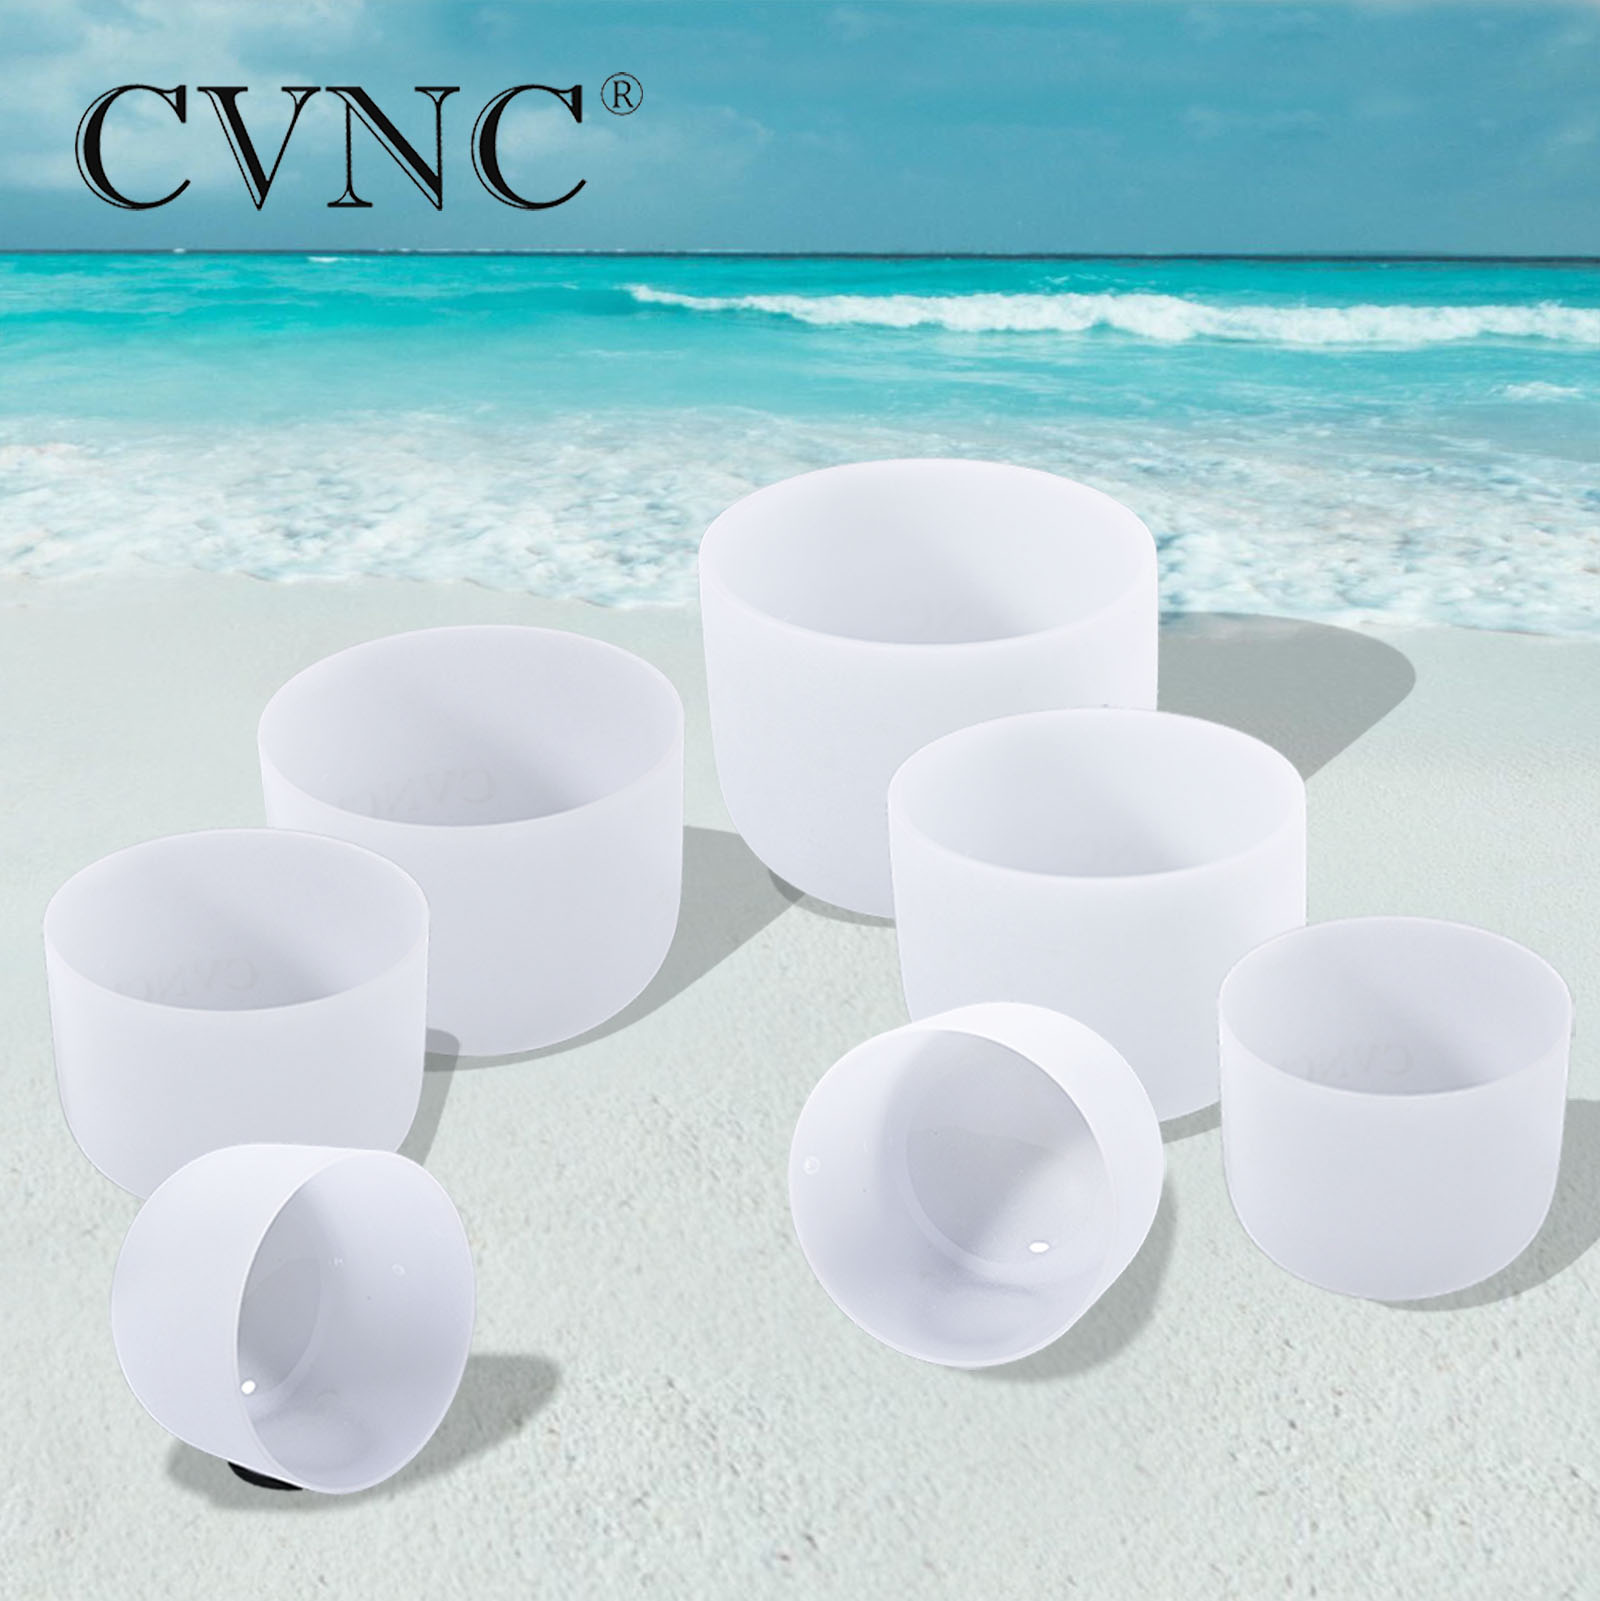 CVNC High purity 440Hz or 432Hz Chakra Tuned Set of 7pcs 8 - 16 Frosted Quartz Crystal Singing BowlsCVNC High purity 440Hz or 432Hz Chakra Tuned Set of 7pcs 8 - 16 Frosted Quartz Crystal Singing Bowls